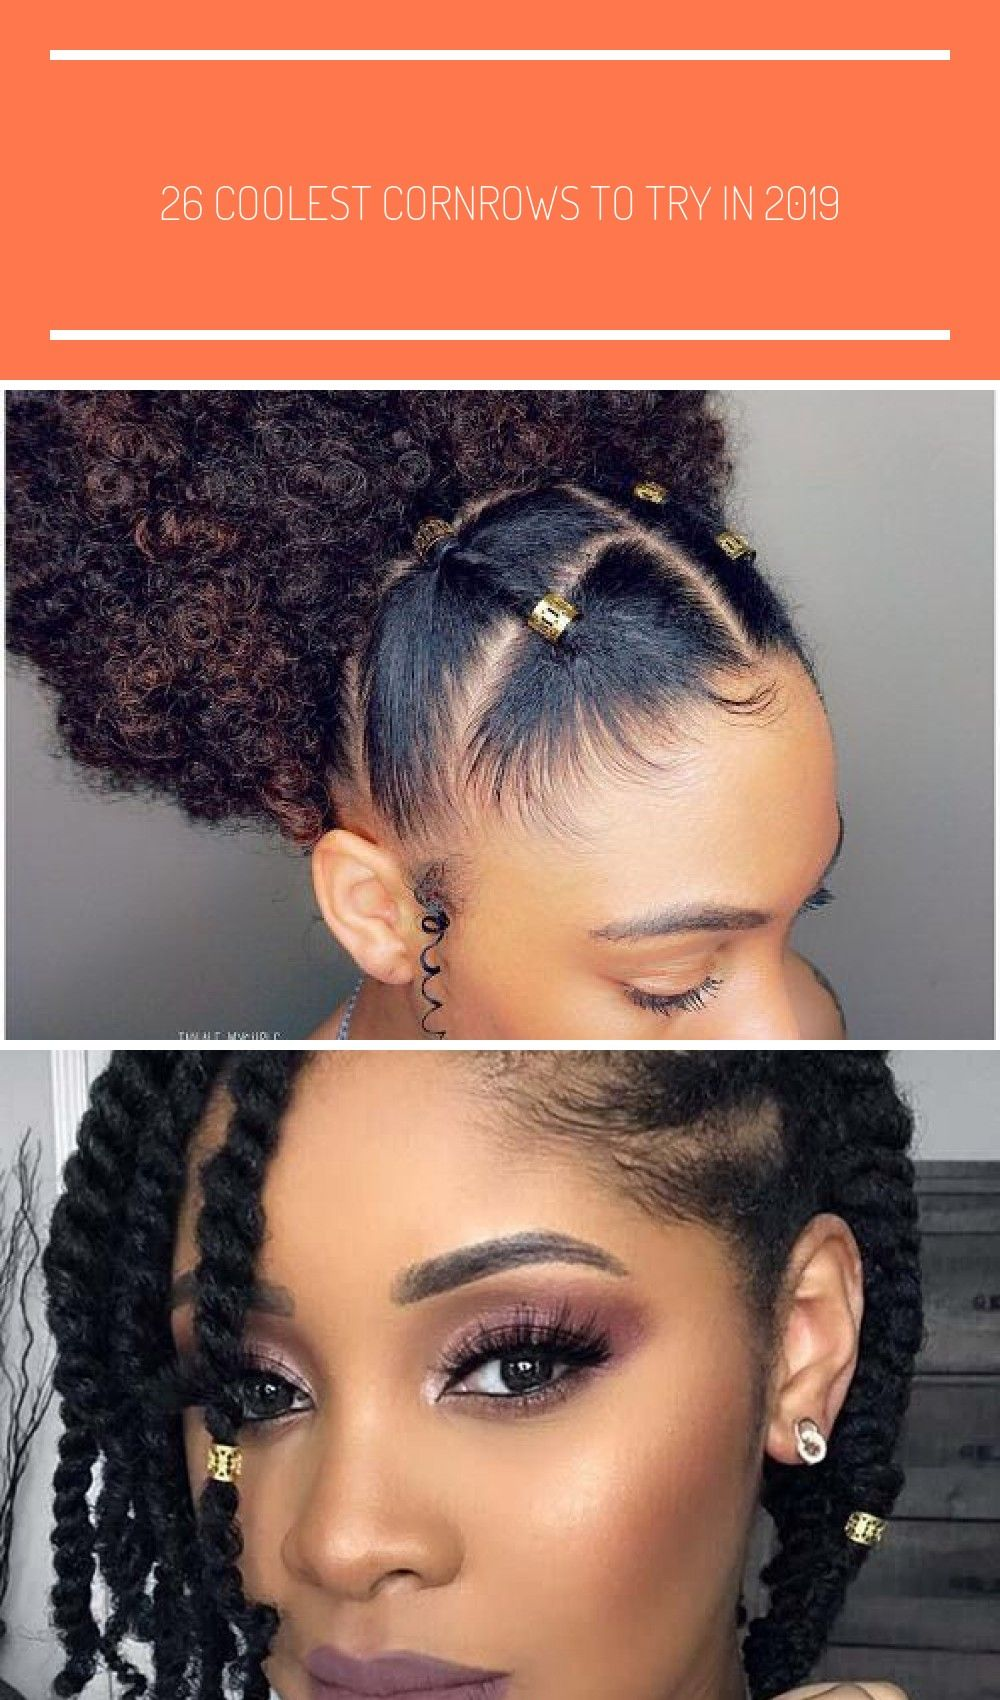 17 Best Natural Hairstyles for Black Women to Try hairstyles 26 Coolest Cornrows to Try in 2019